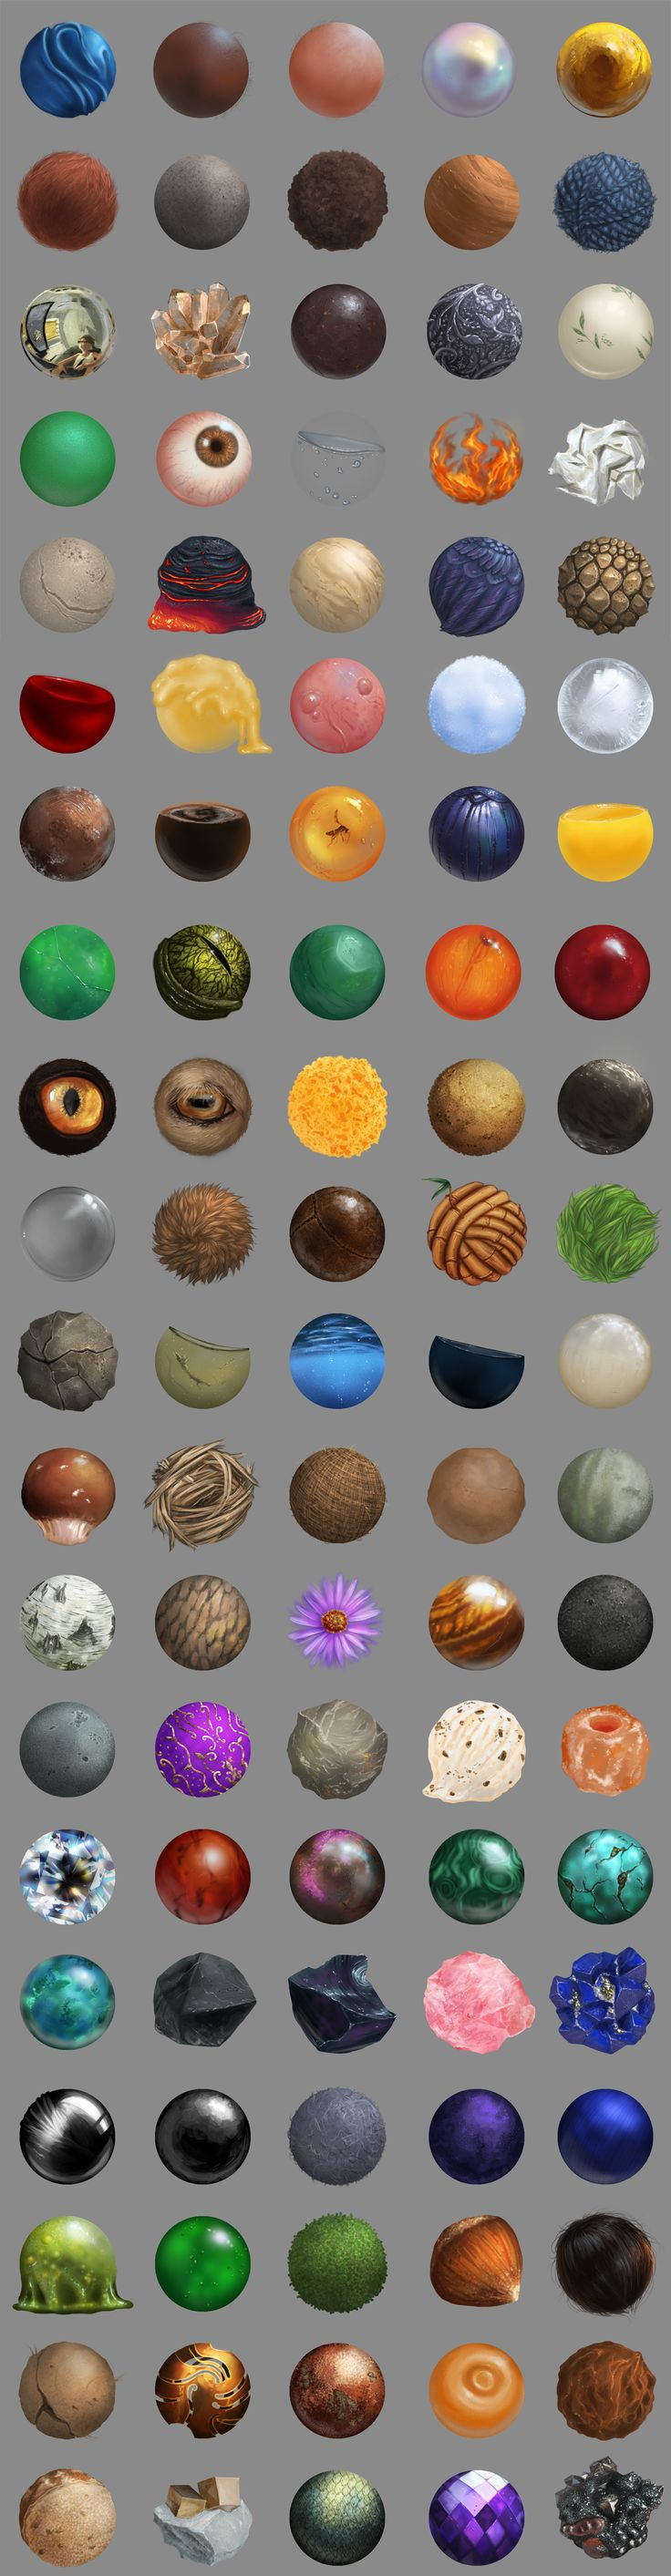 100 Material Studies by ThiaminaTenn on DeviantArt